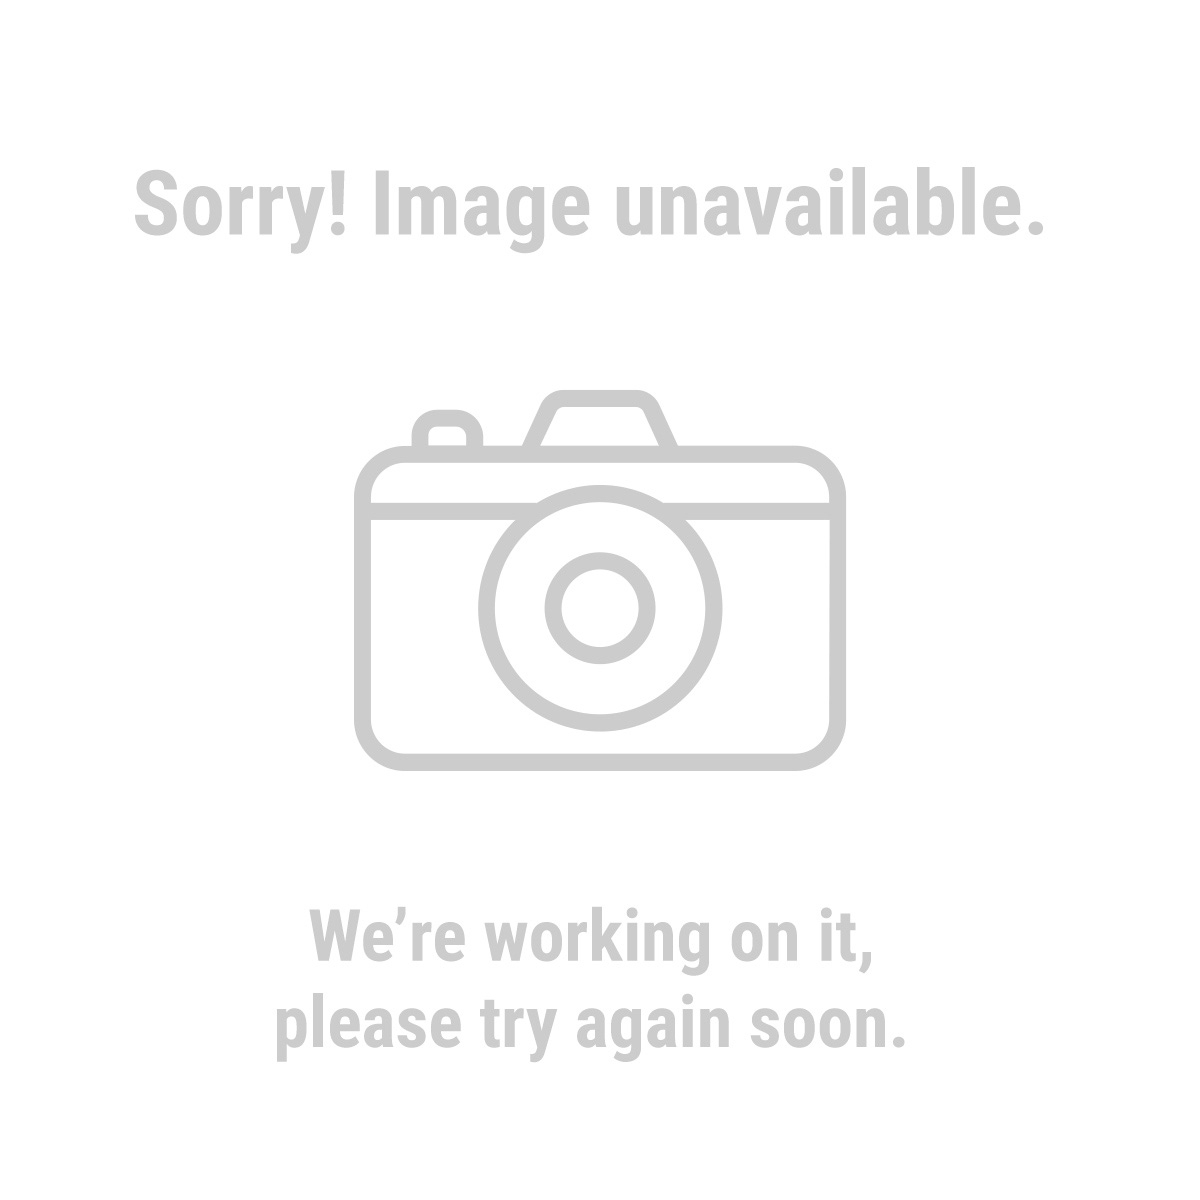 Thunderbolt Magnum 68129 4 Pack CR2032 Lithium Button Cell Batteries